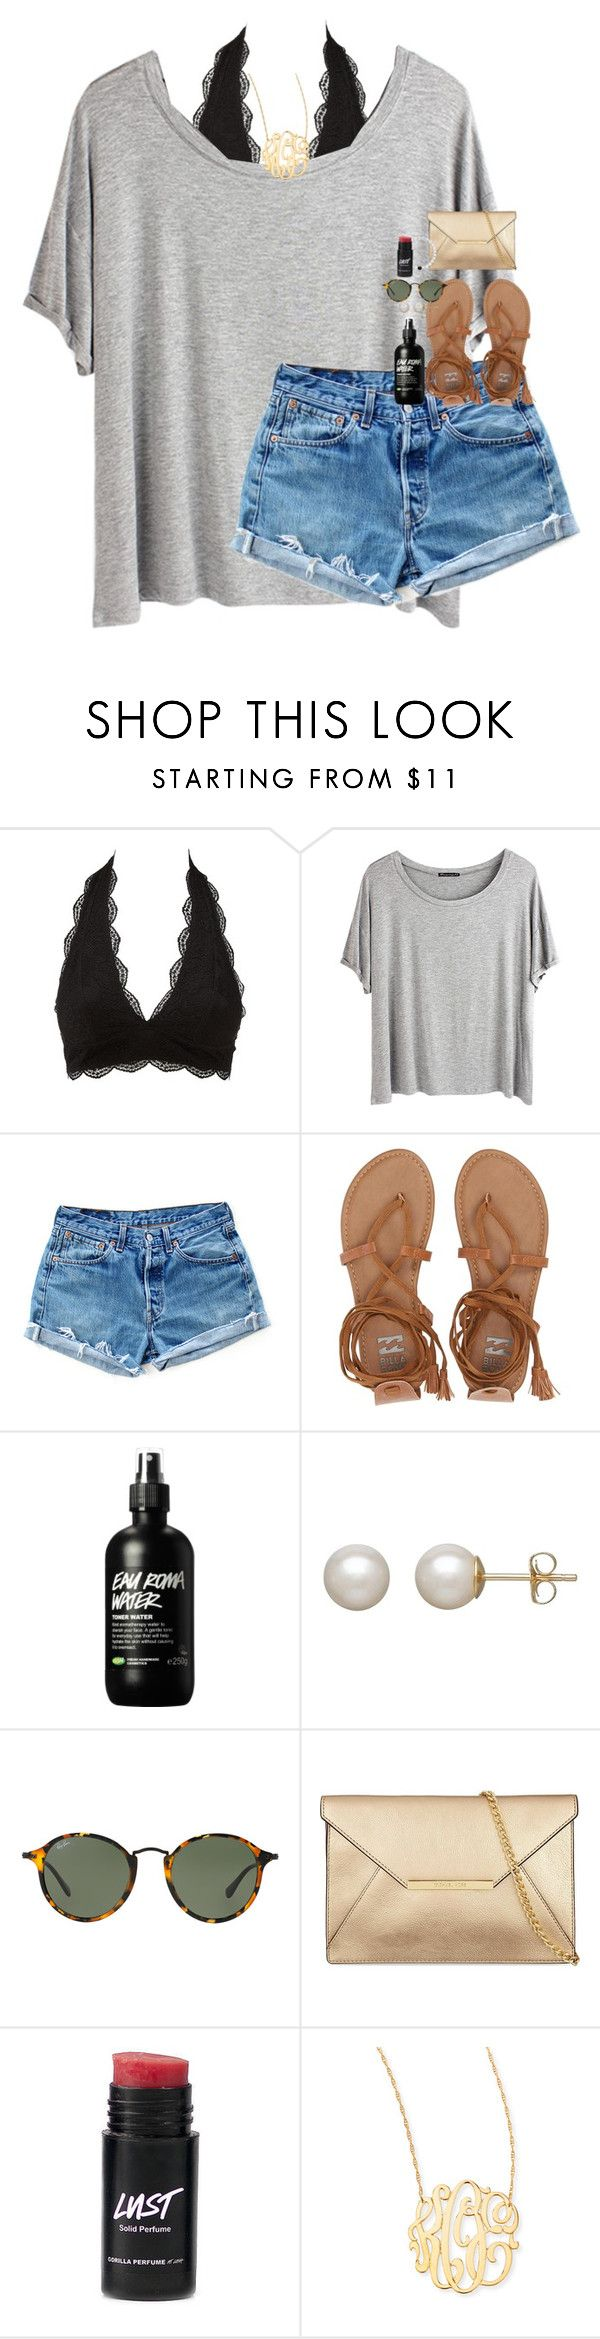 """got the blue sky breeze blowing wind through my hair"" by classynsouthern ❤ liked on Polyvore featuring Charlotte Russe, Chicnova Fashion, Levi's, Billabong, Honora, Ray-Ban and Jennifer Zeuner"